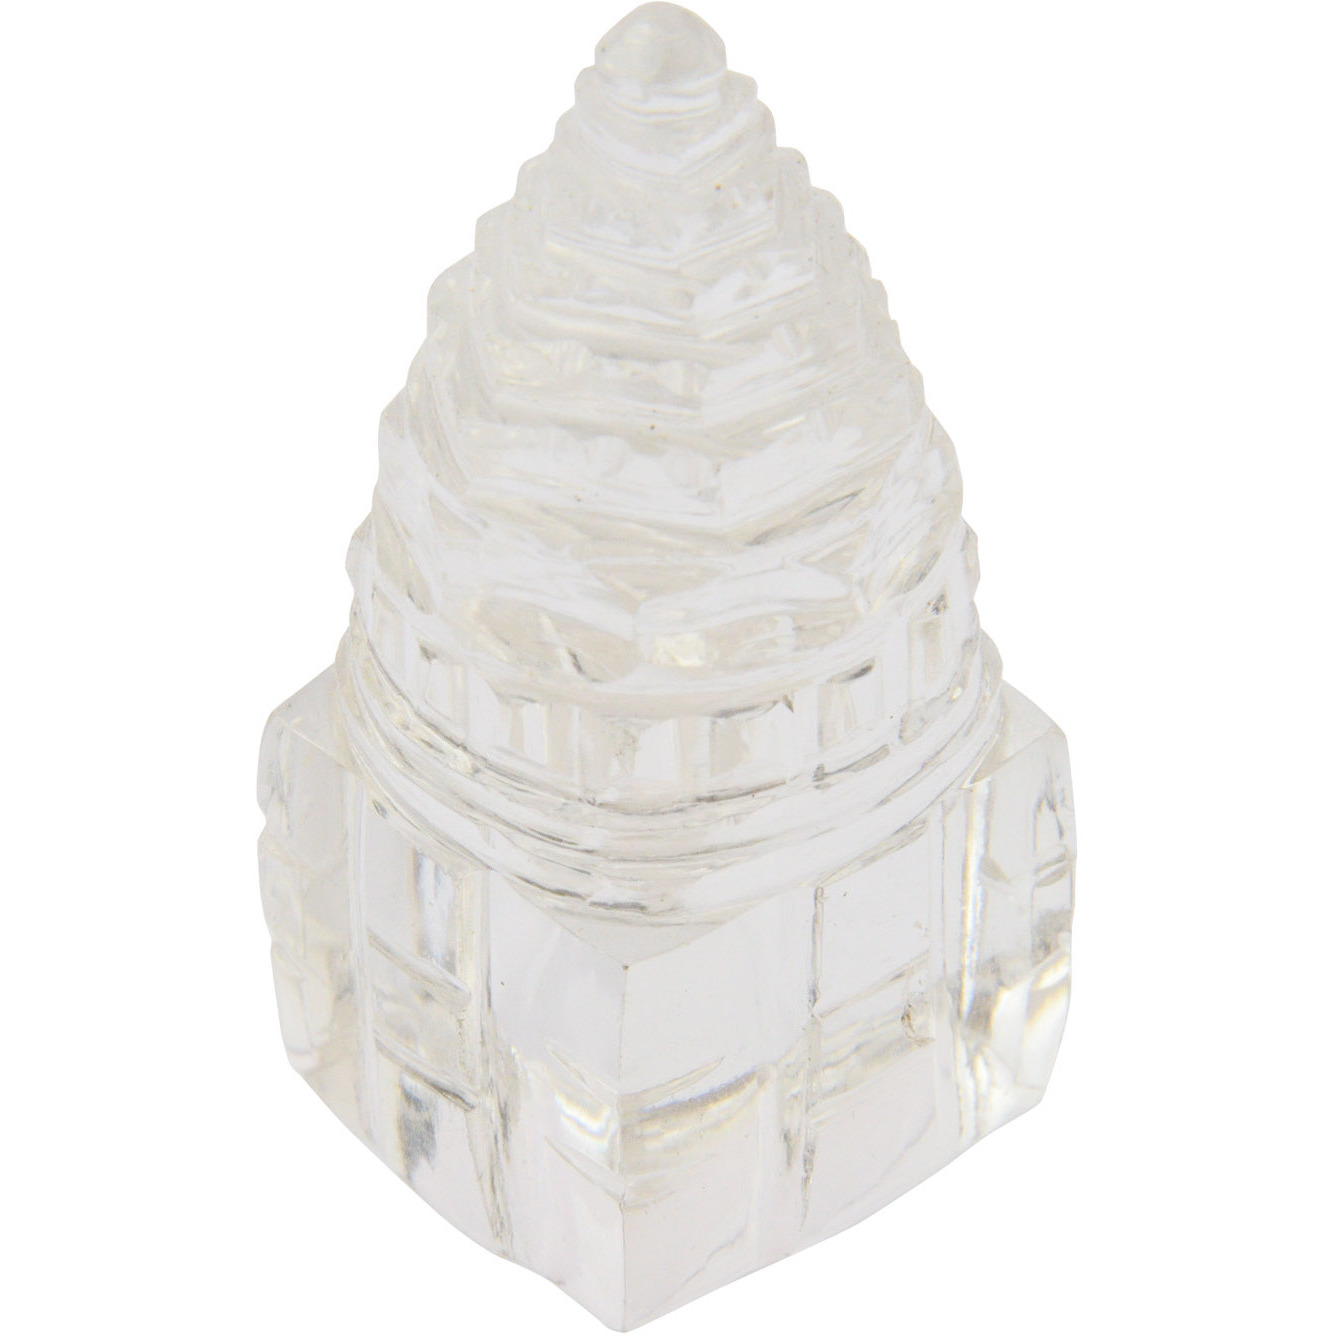 Shri Yantra Carved in Real Crystal